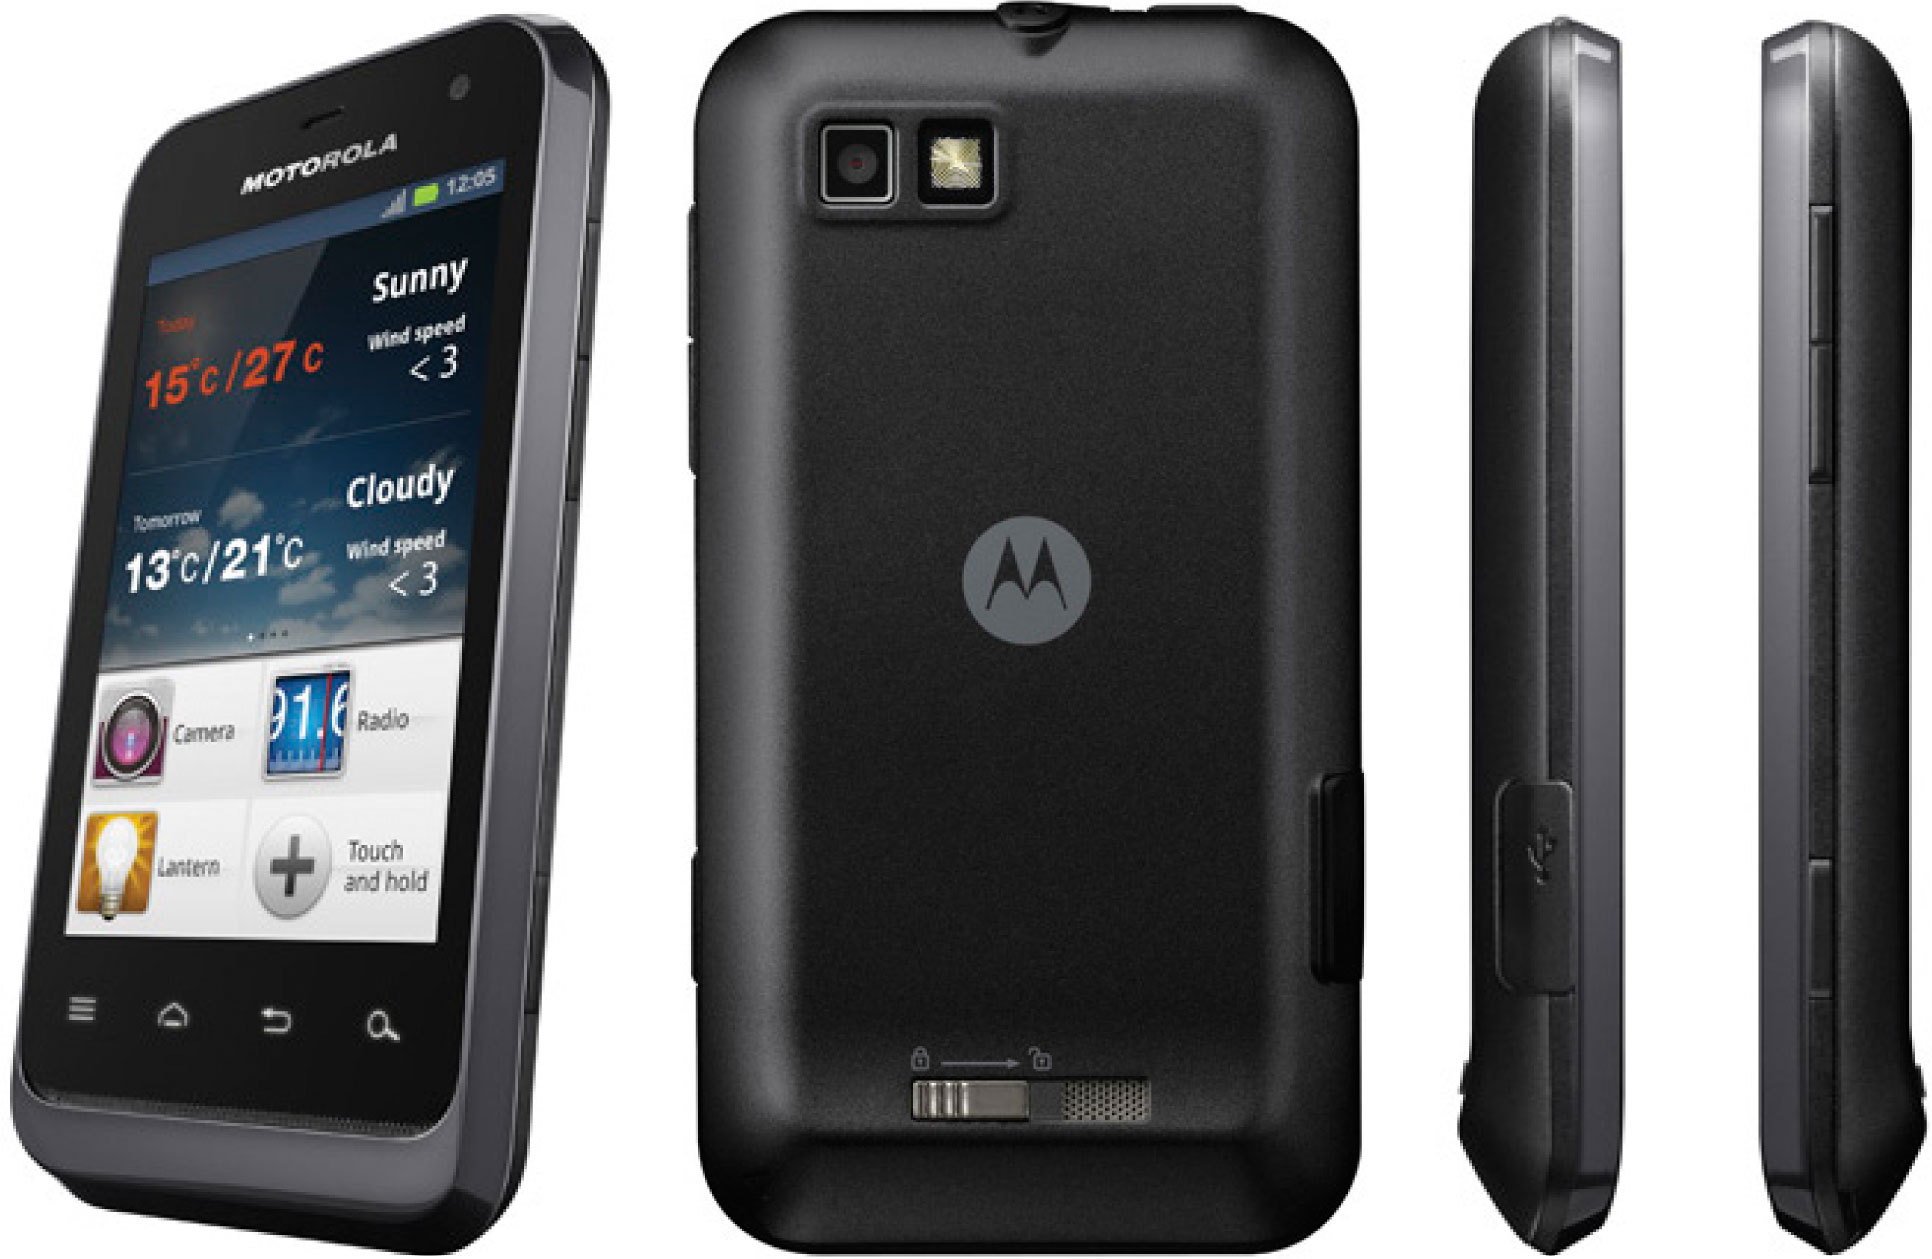 motorola defy mini sim free smartphone black slate amazon co uk rh amazon co uk Motorola Talkabout Alcatel One Touch Manual